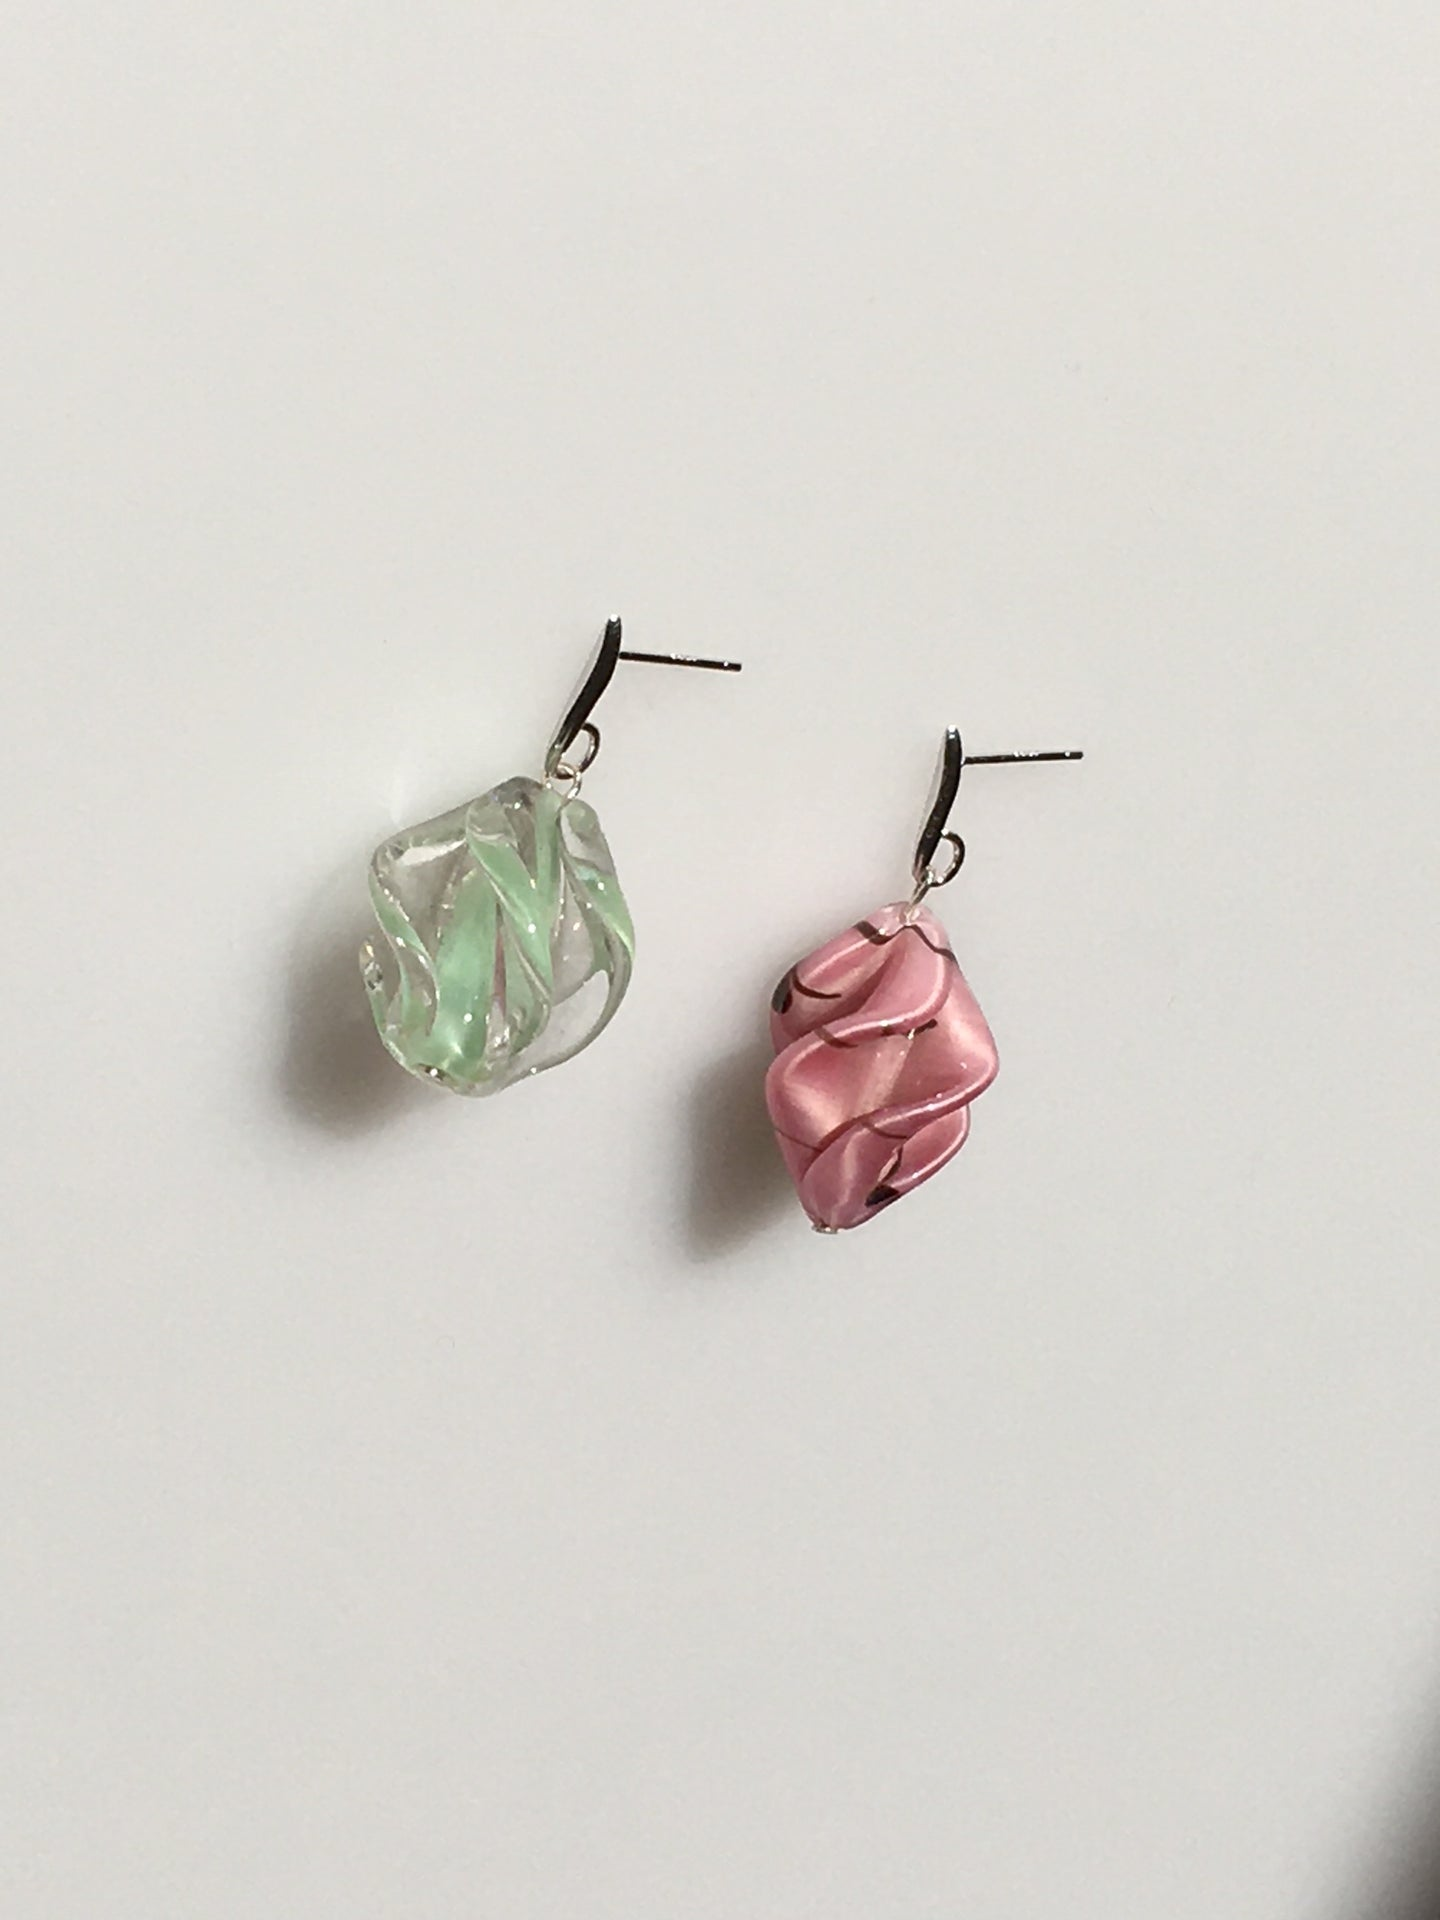 Foulard earrings - Mismatched